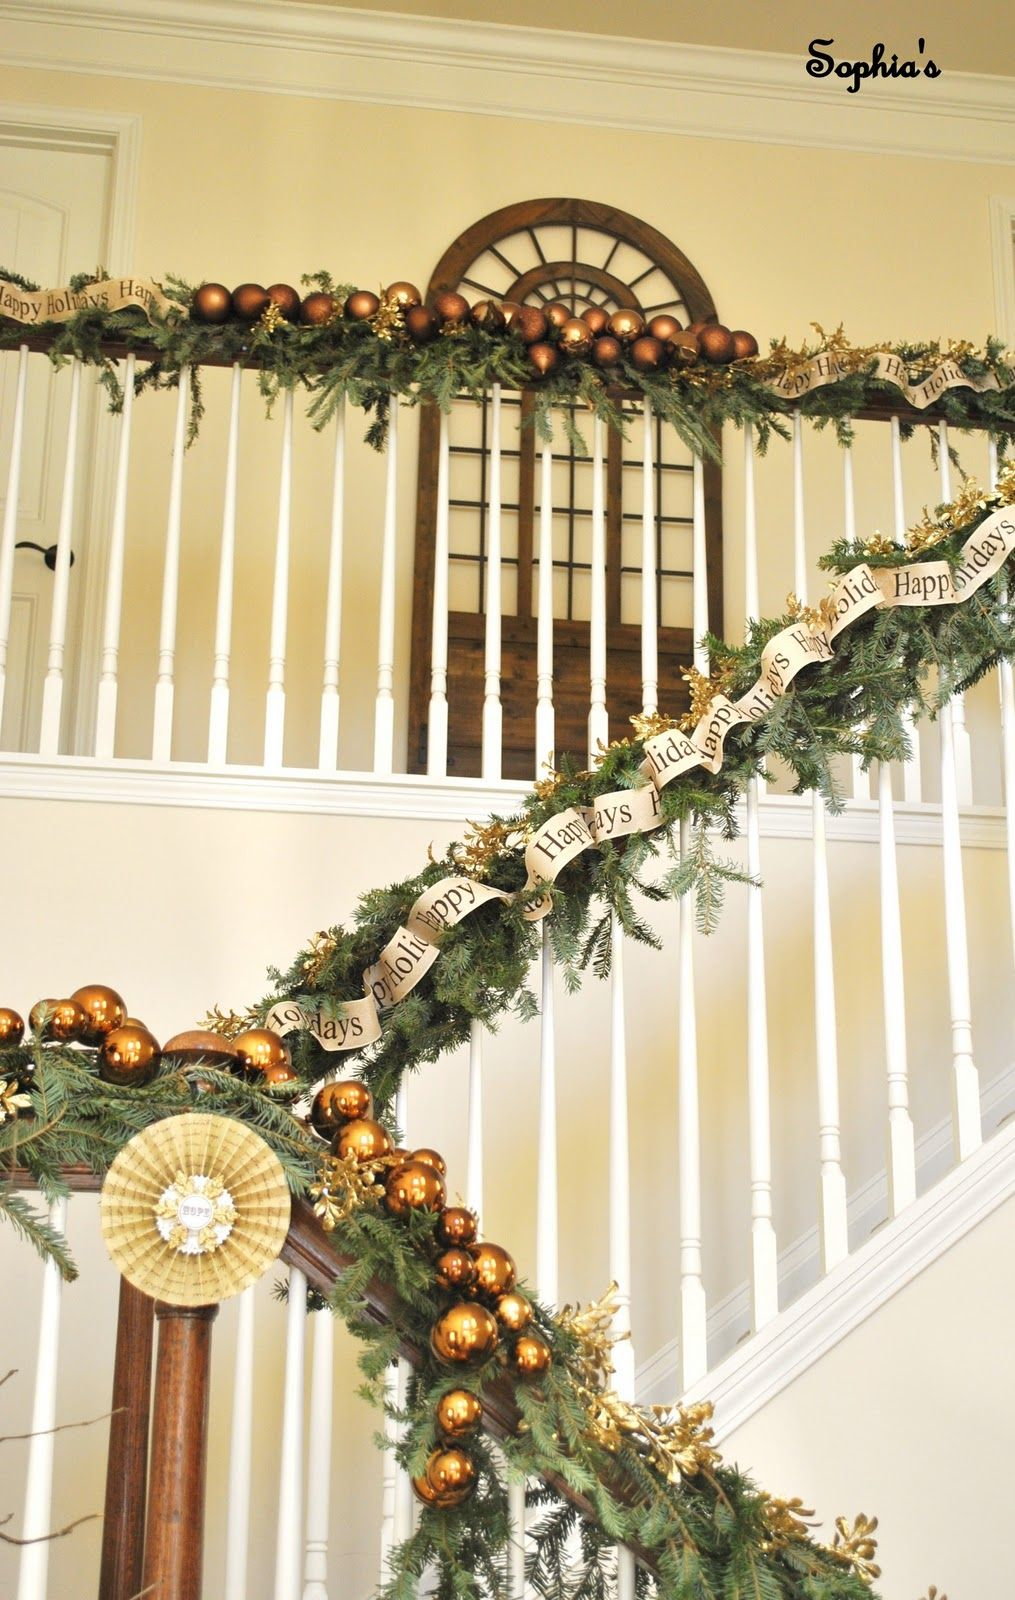 stairs banister christmas decoration - Banister Christmas Decorations